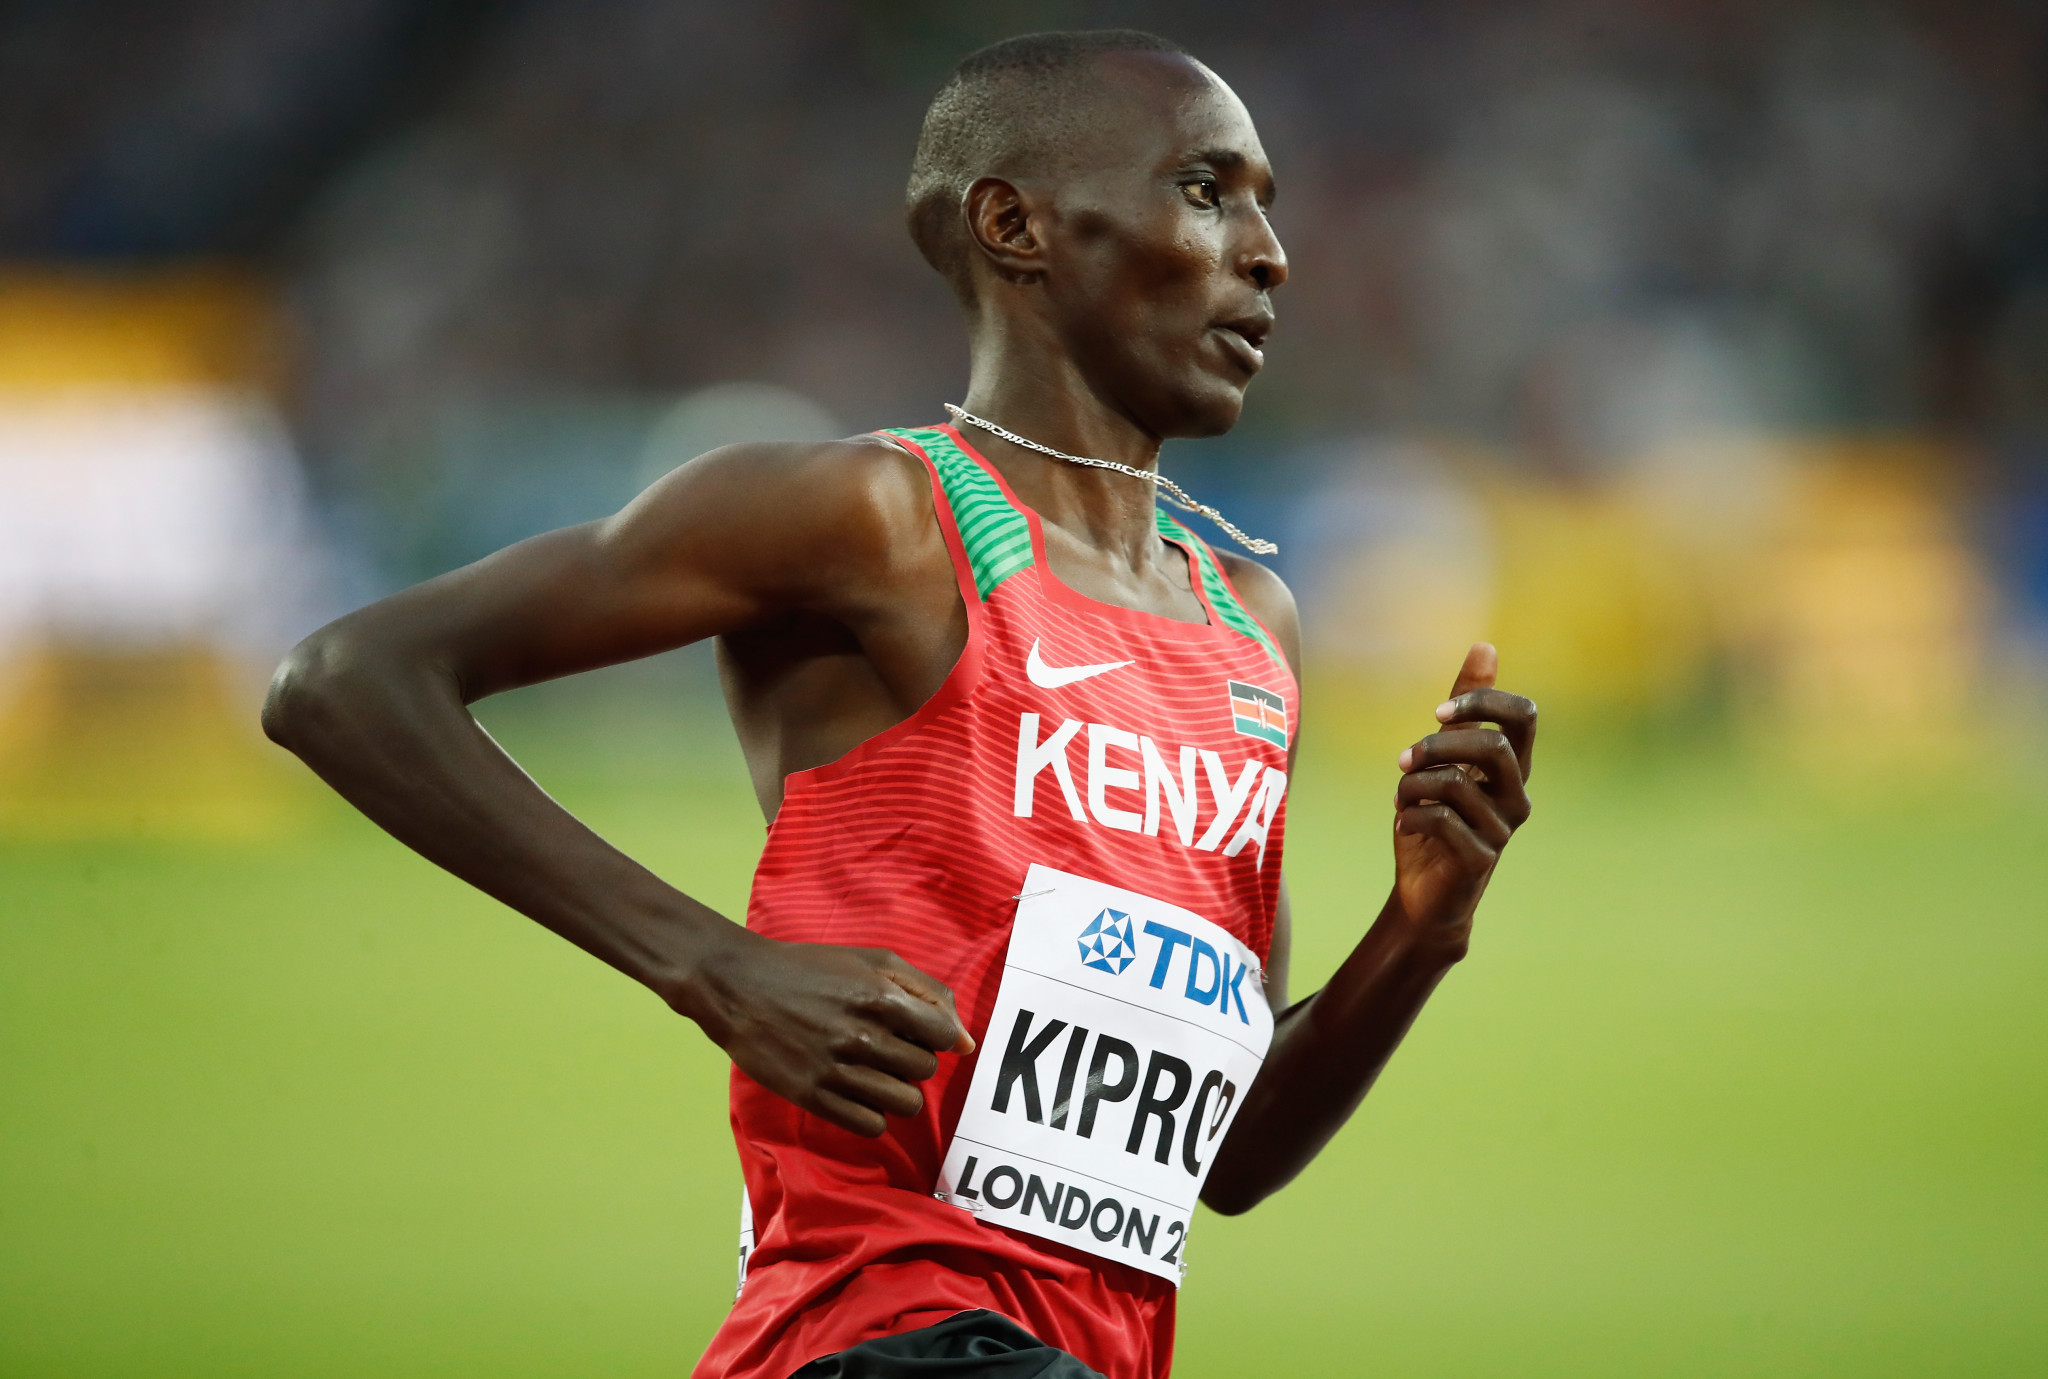 Kiprop hit with four-year ban after positive test for EPO